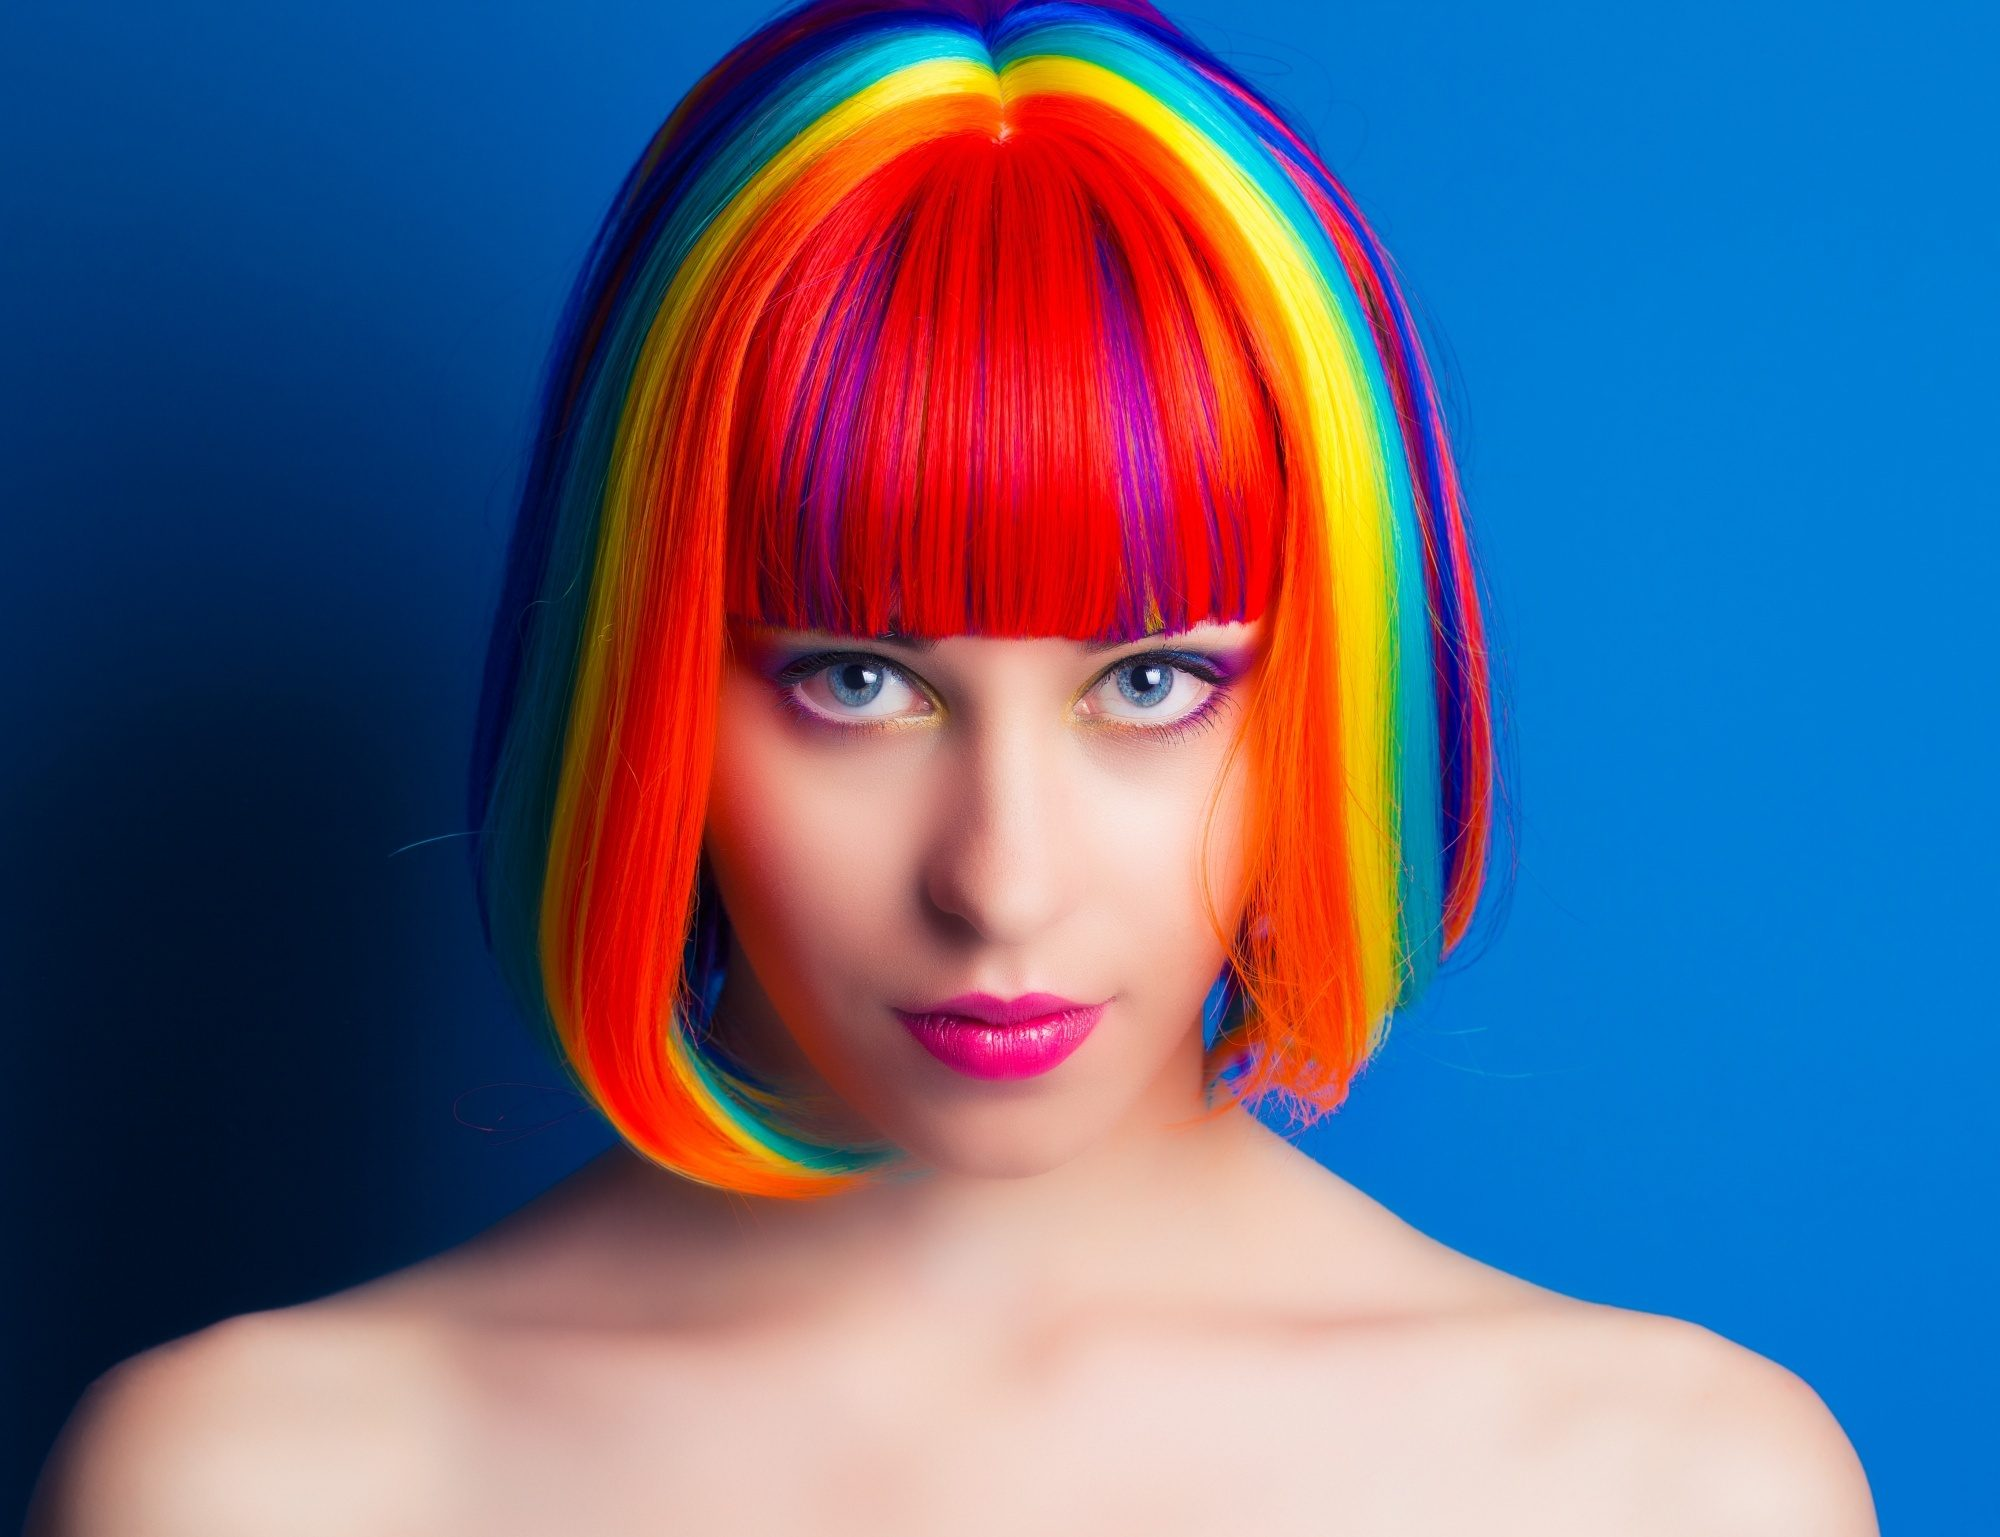 Woman with short hair with bangs with rainbow hair